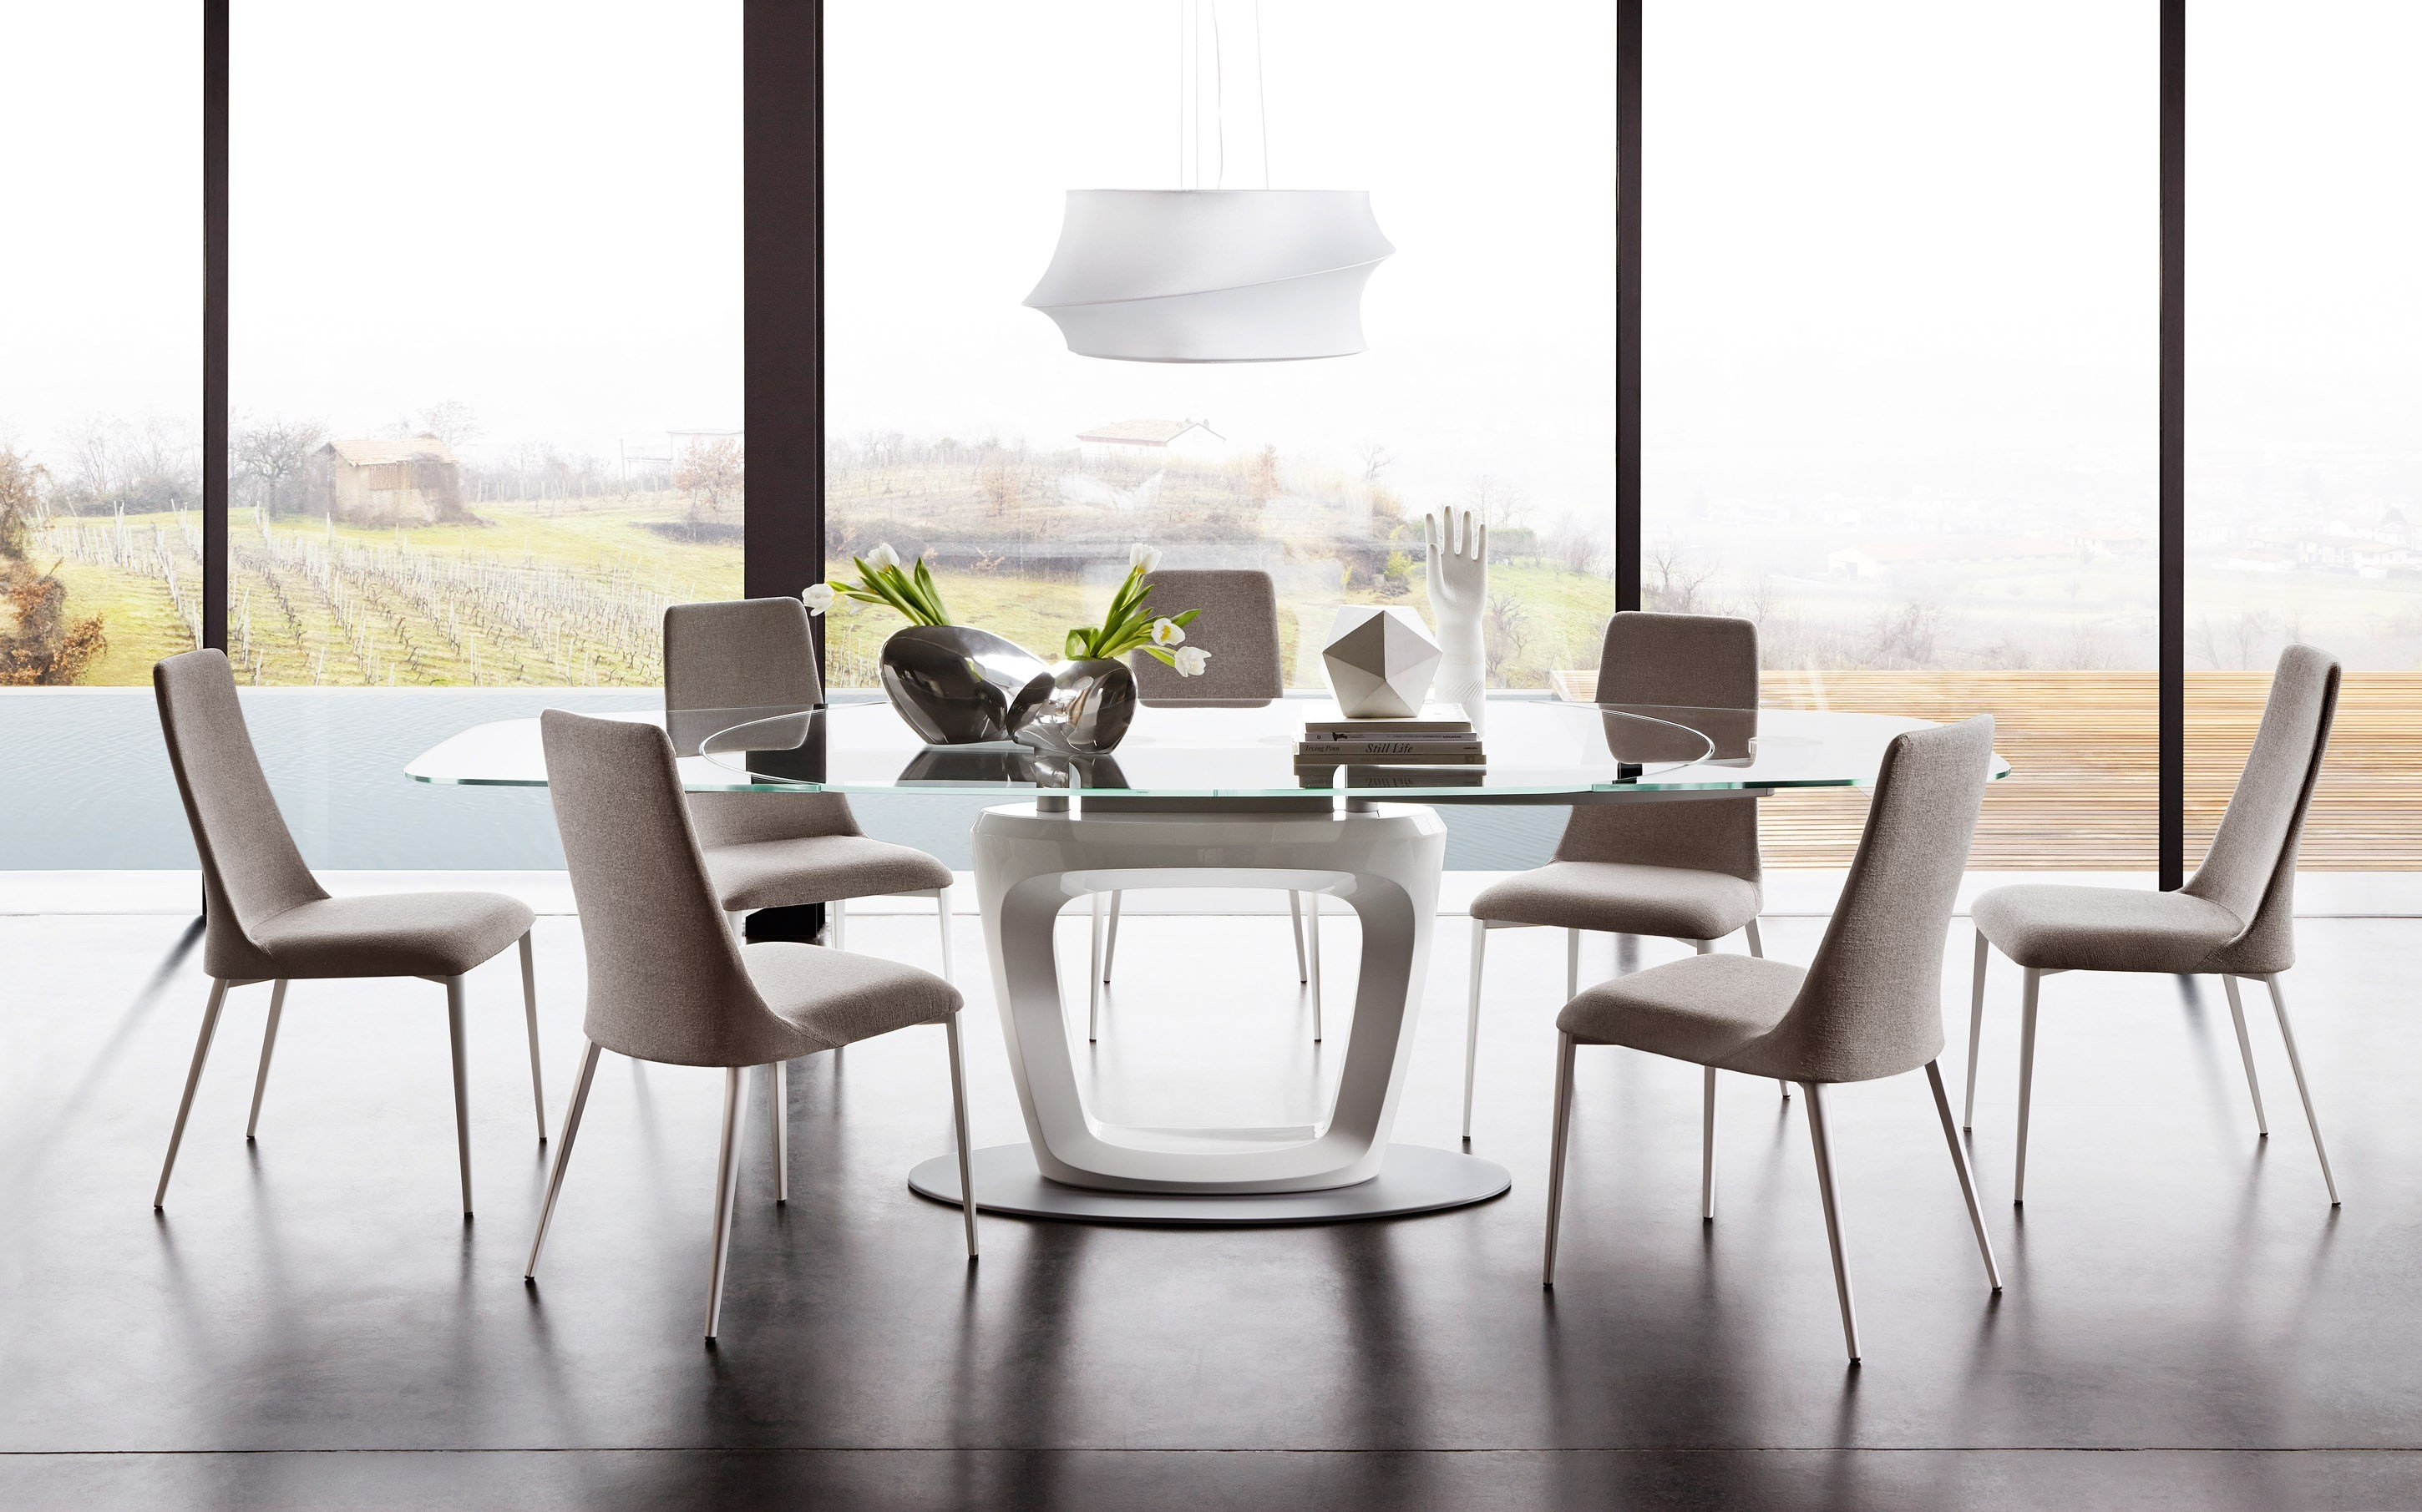 Orbital extending table by calligaris design pininfarina for Table ovale extensible